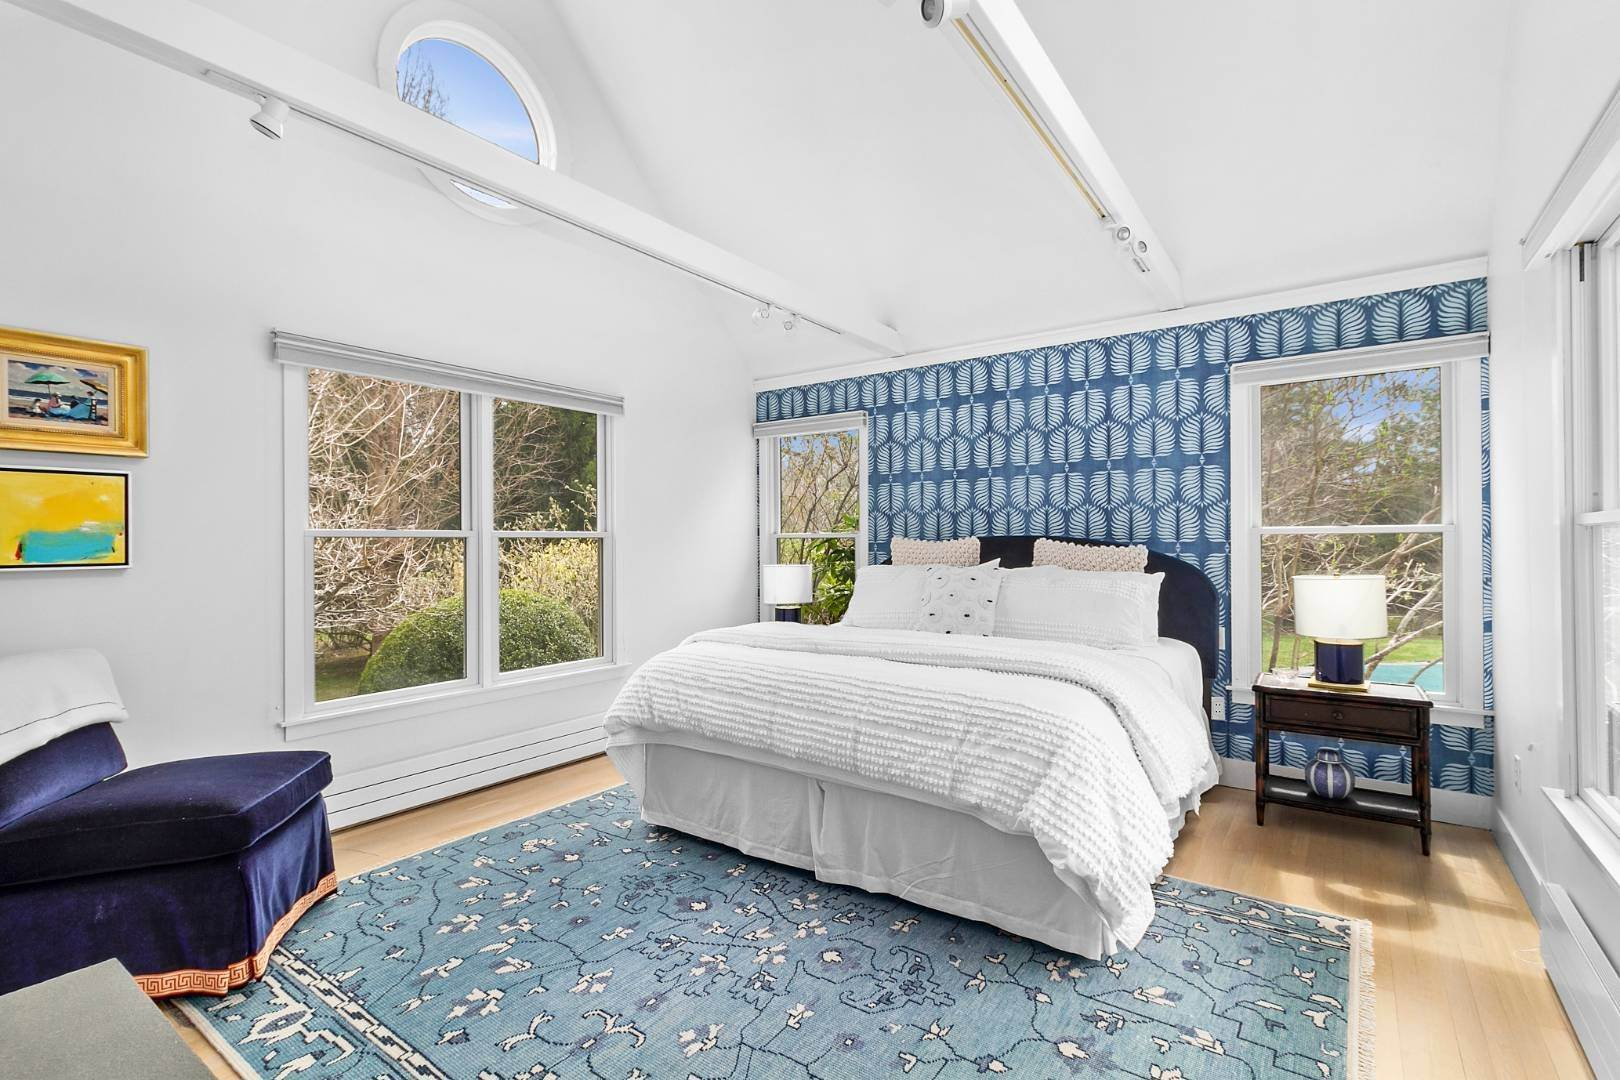 8. Single Family Home for Sale at Historic Springs Two-House Compound 104 Old Stone Hwy, East Hampton, NY 11937